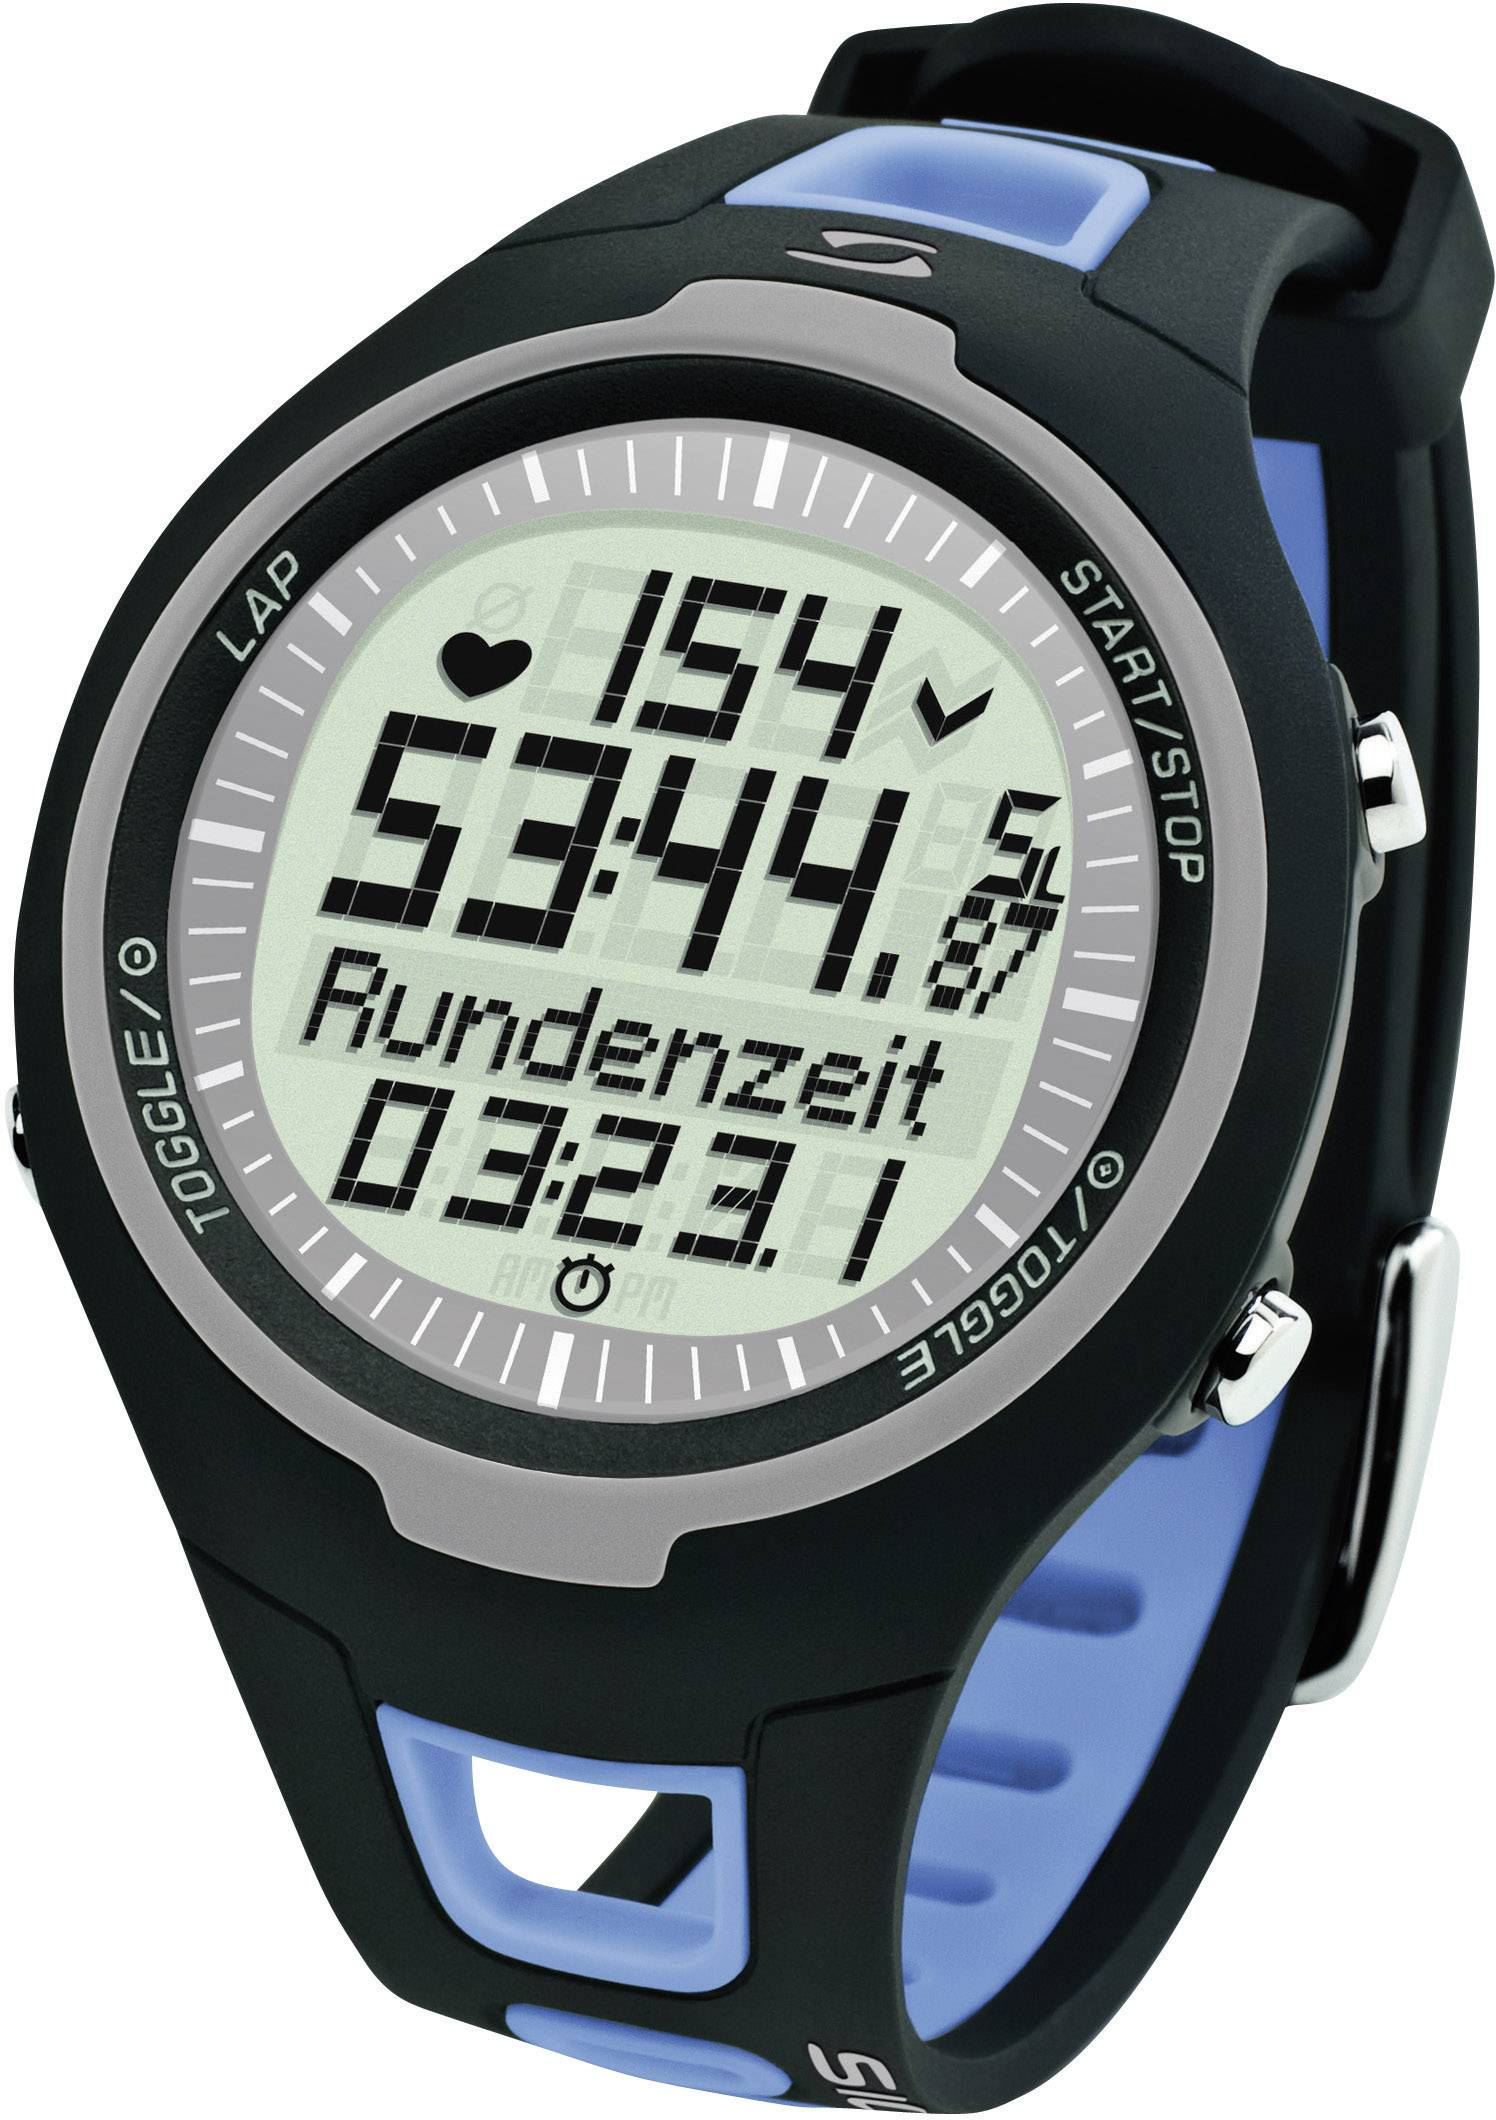 Heart rate monitor watch with chest strap Sigma PC 1511 Blue from